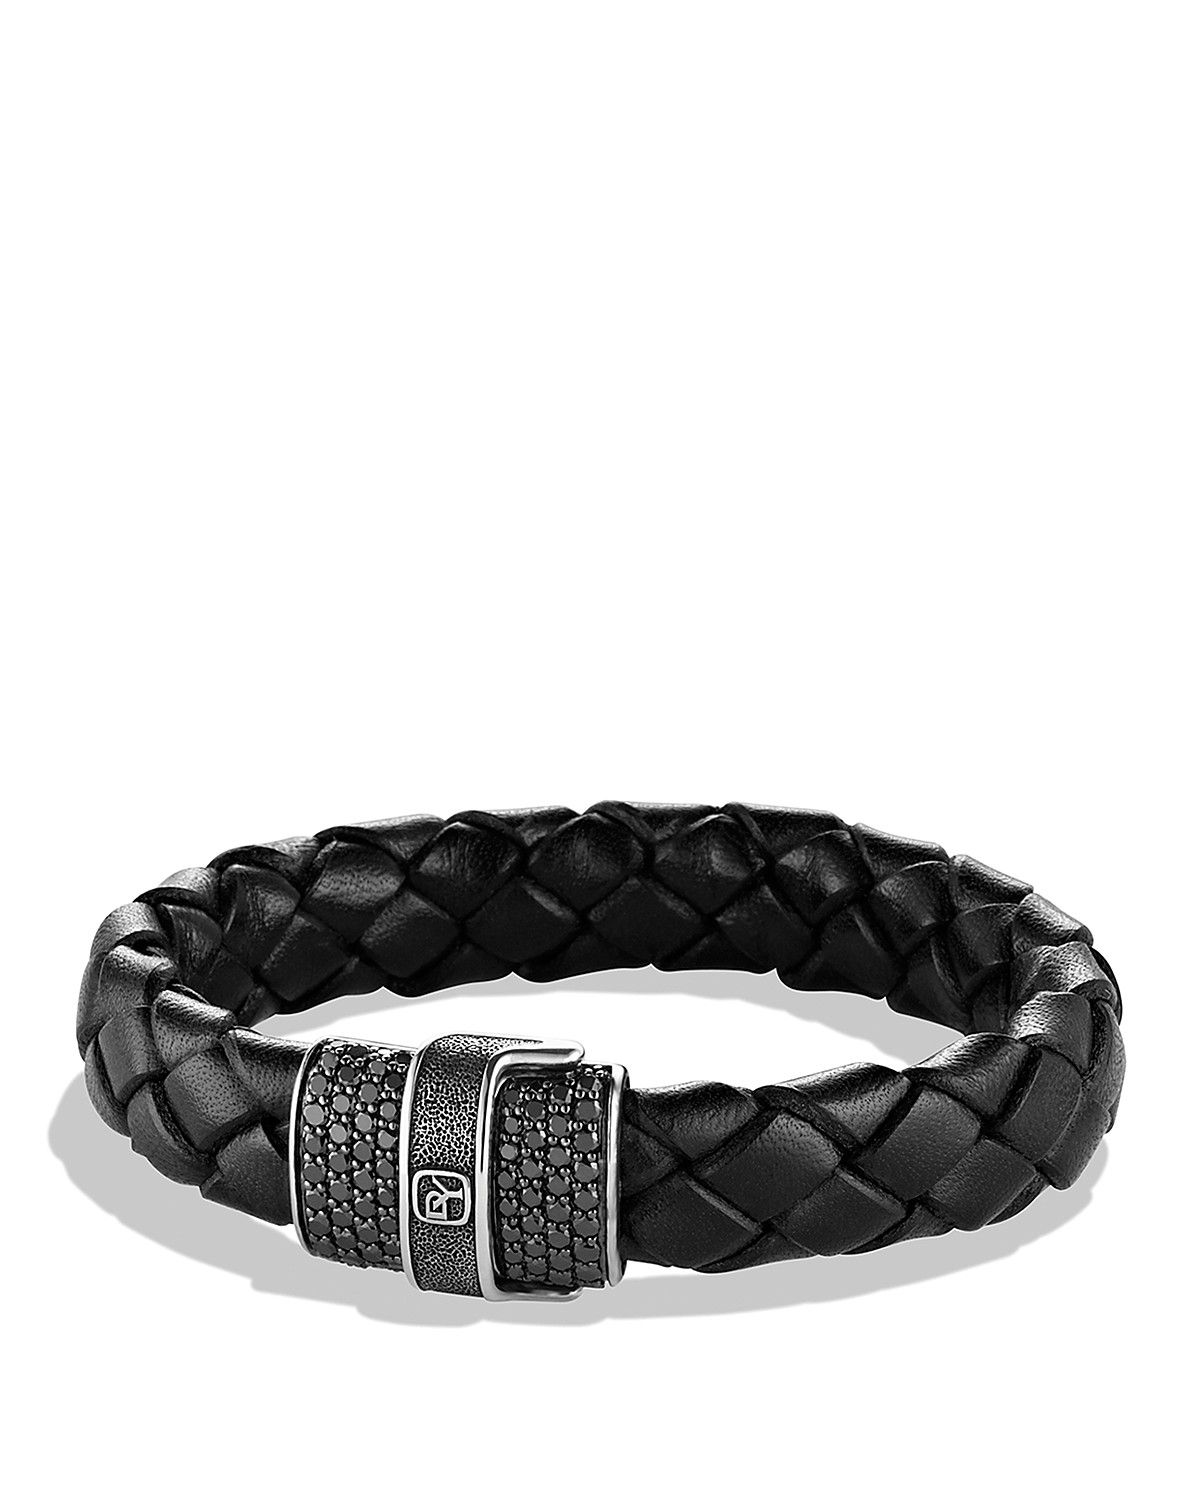 8919436eab8e David Yurman Pavé Bracelet in Black with Black Diamonds  mens ...